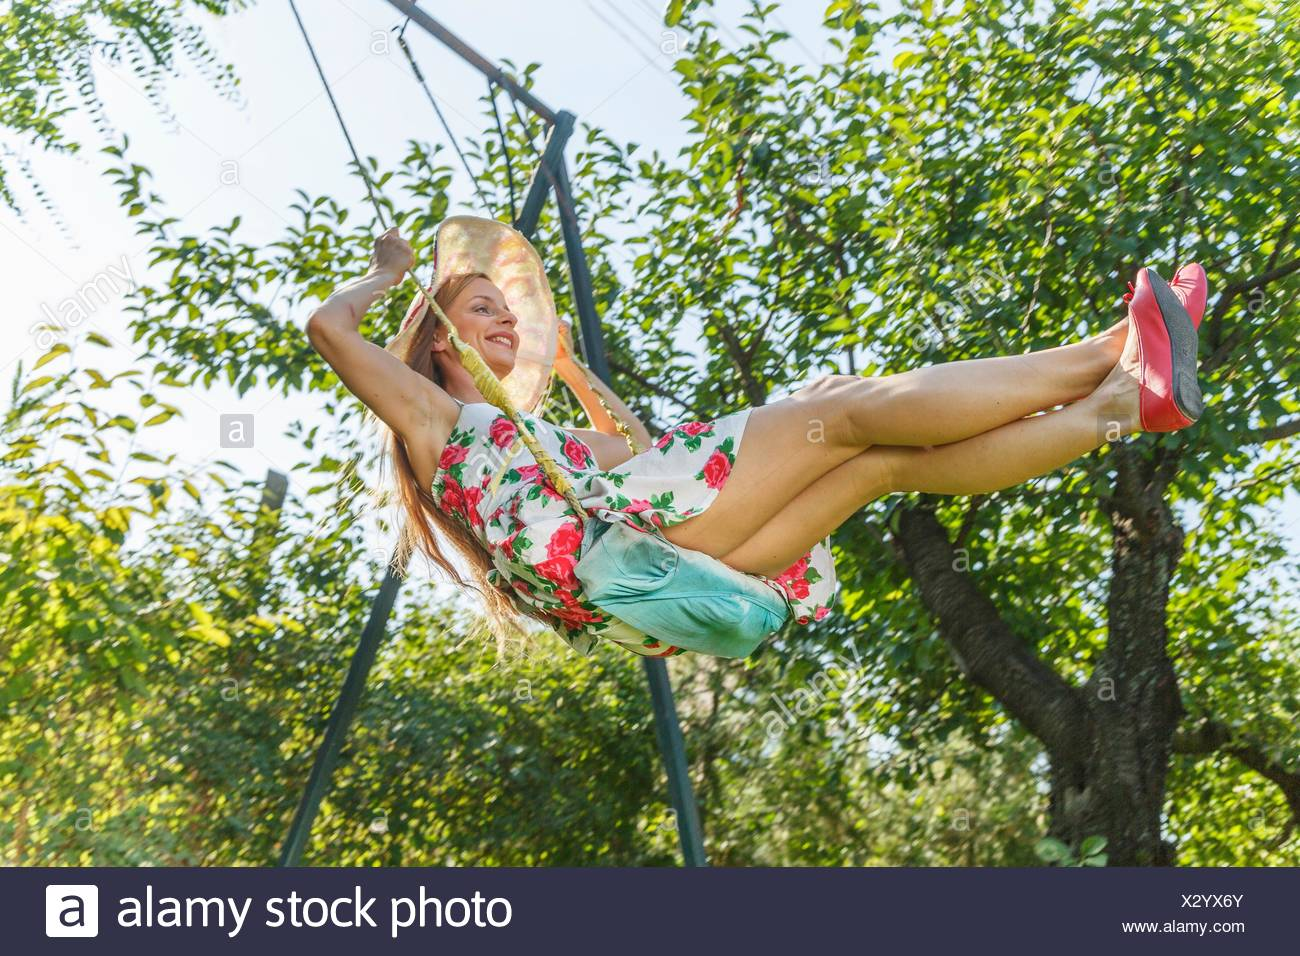 Mid adult woman swinging sur garden swing, low angle view Photo Stock